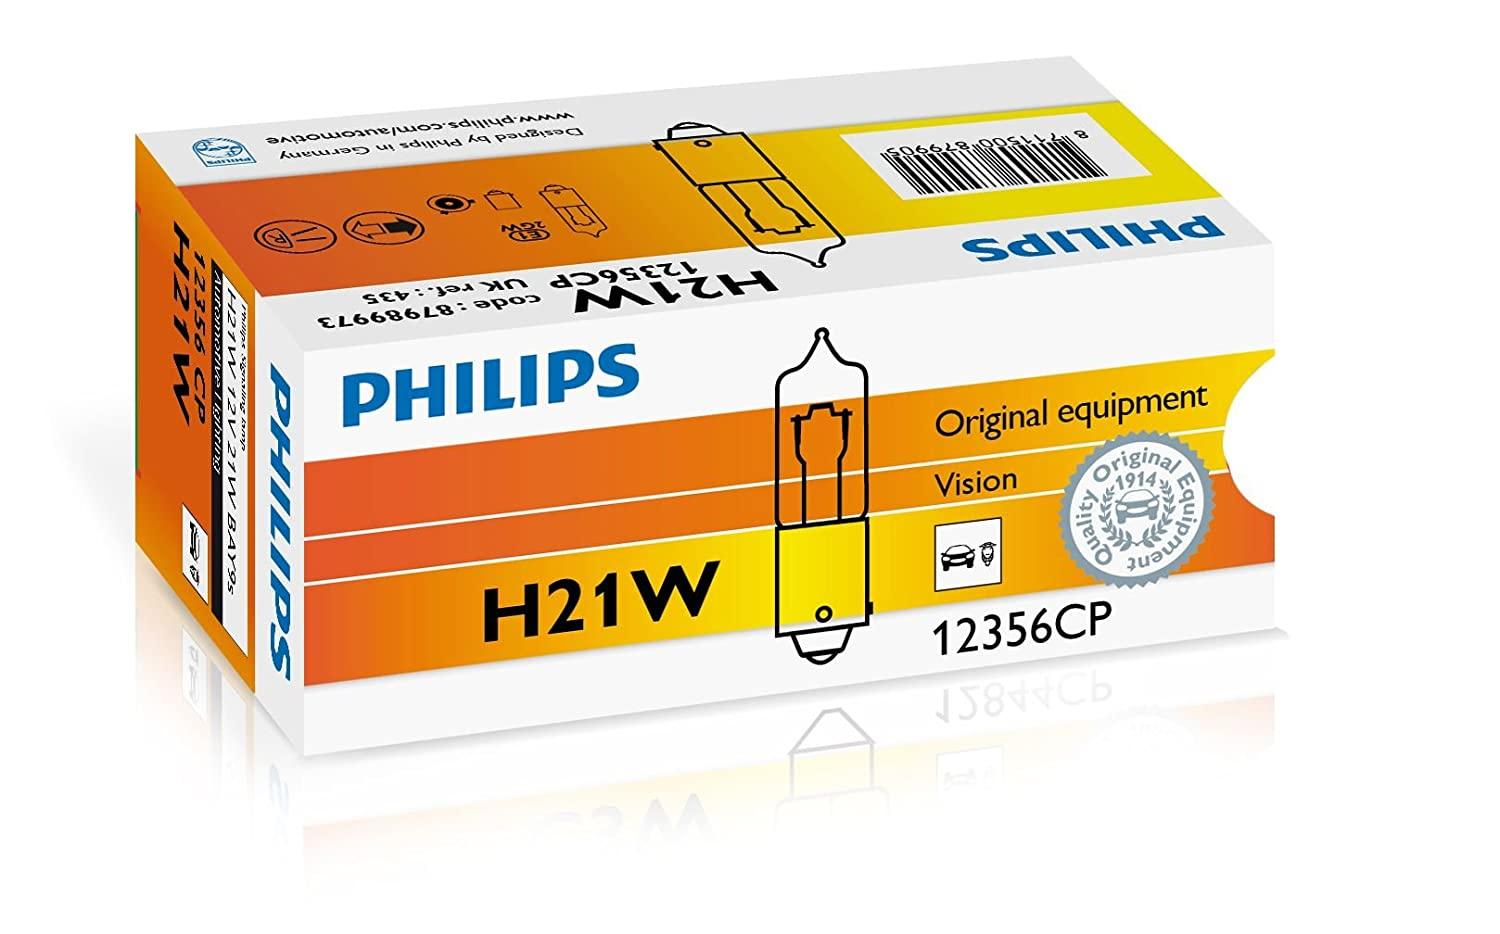 car light bulbs H21W, 21 W, Fog light, High beam, Interior light, Low beam, Parking light, Signaling, Stop light, Box, H21W Philips Vision Conventional Interior and Signaling 12356CP